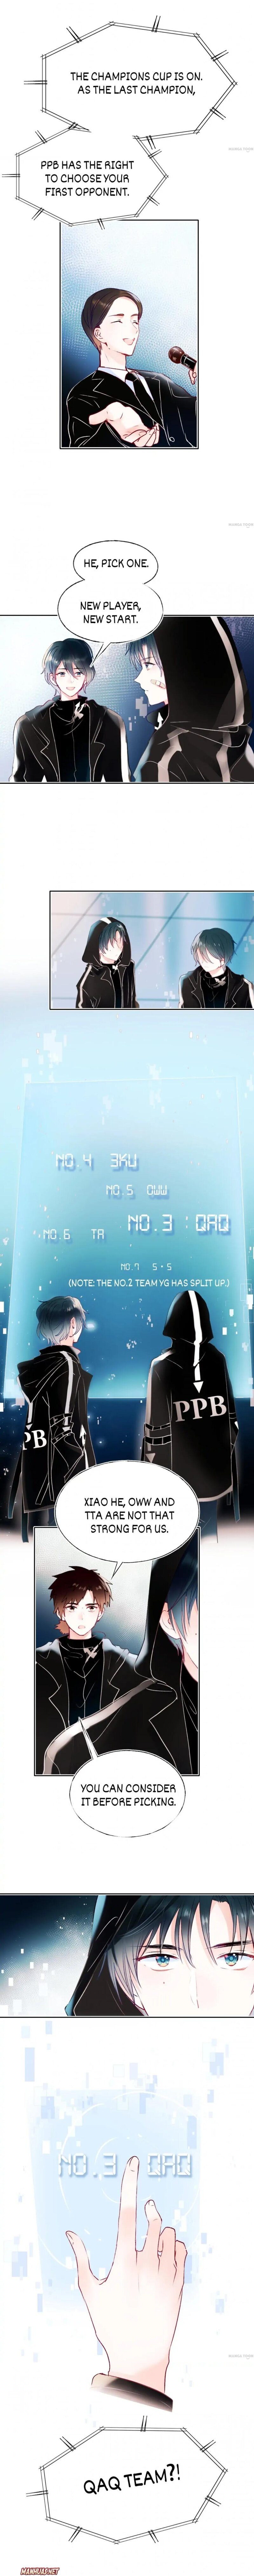 To be Winner - chapter 80 - #3